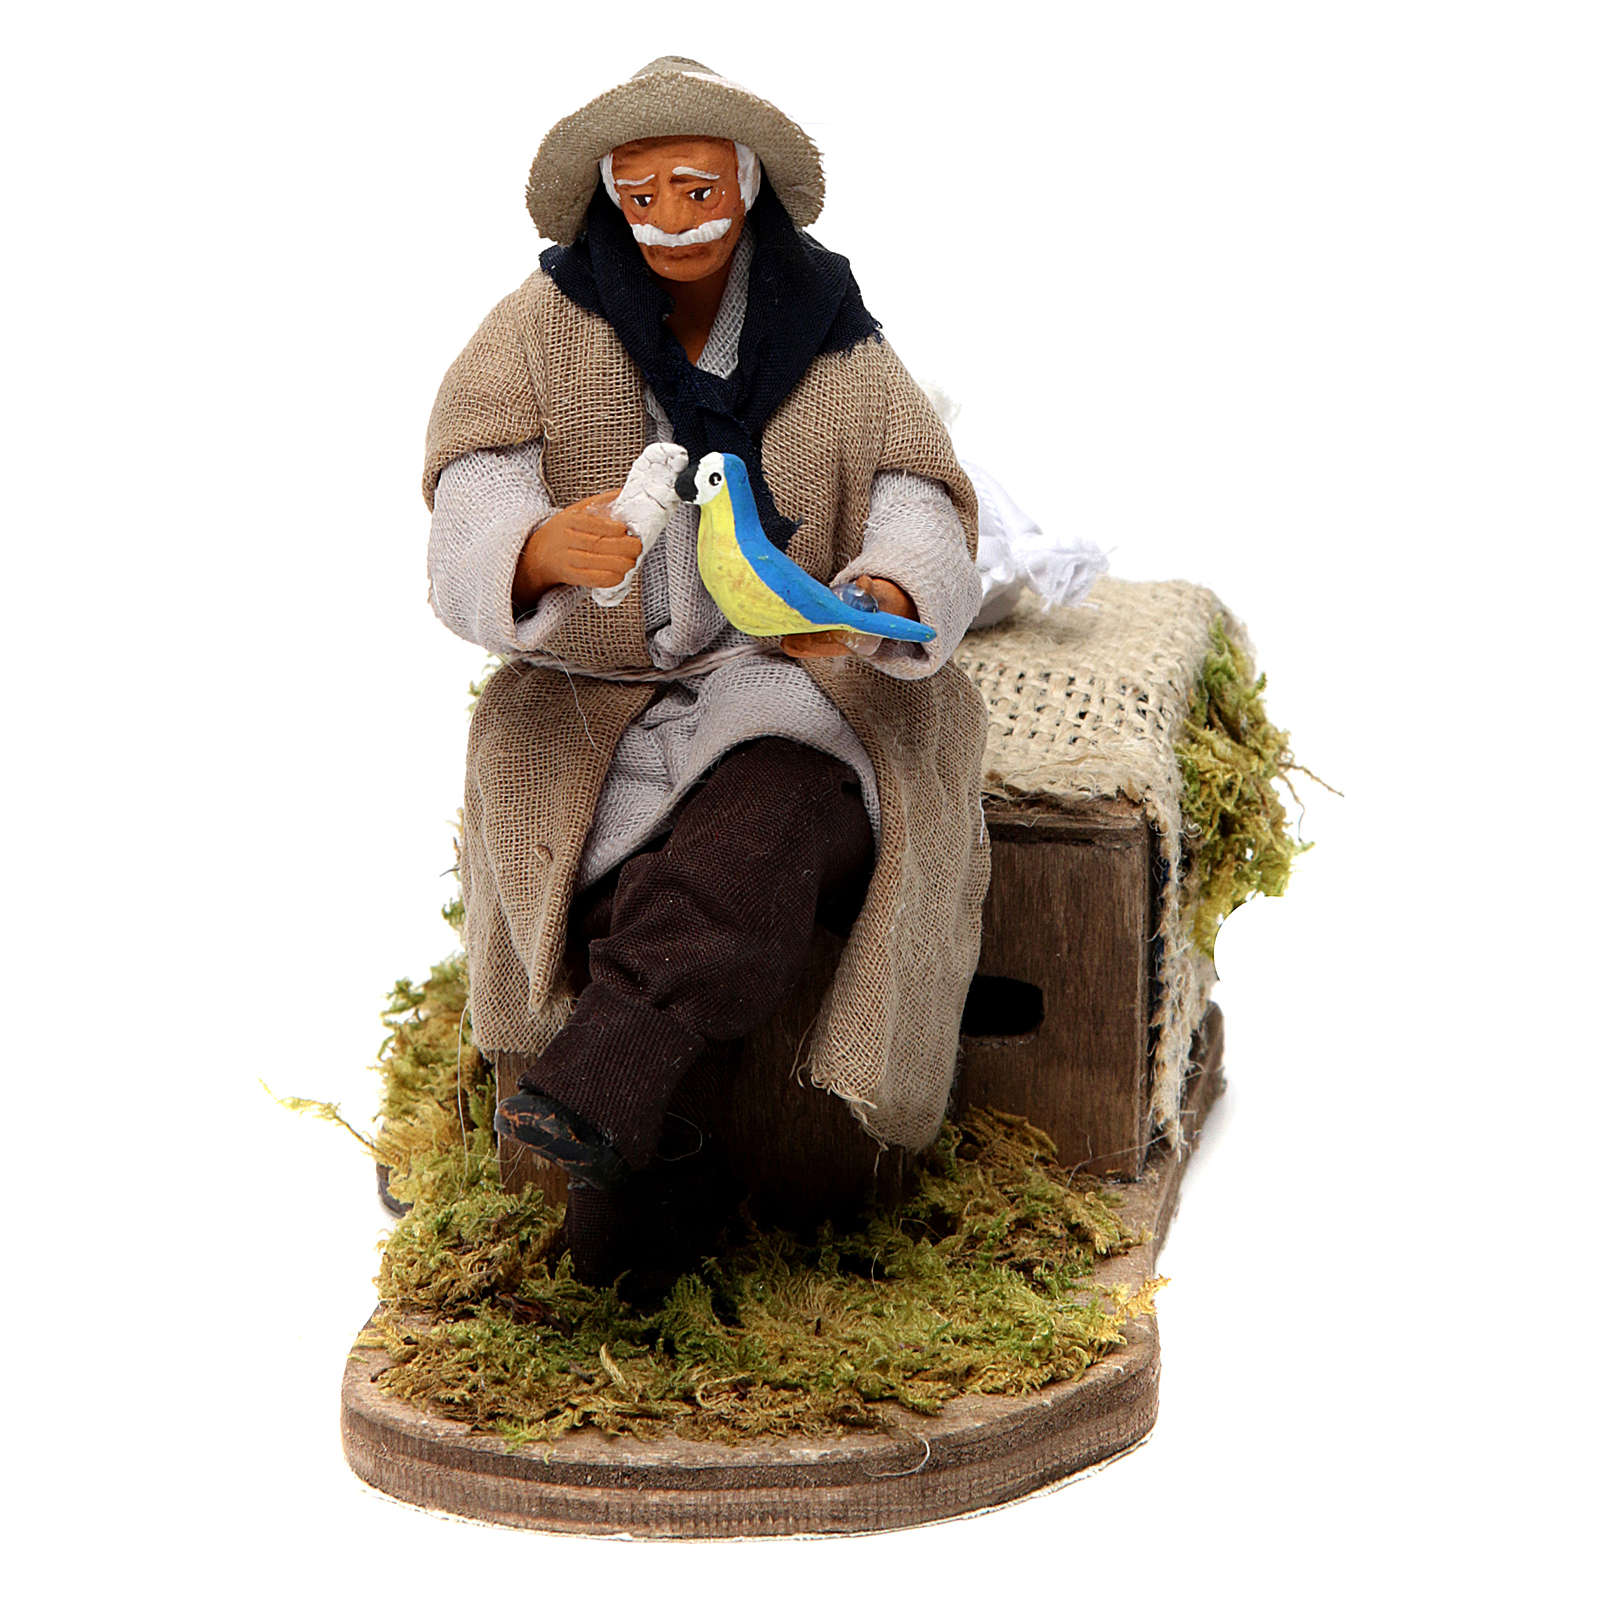 Animated Neapolitan figurine 12 cm depicting a man with parrot 4